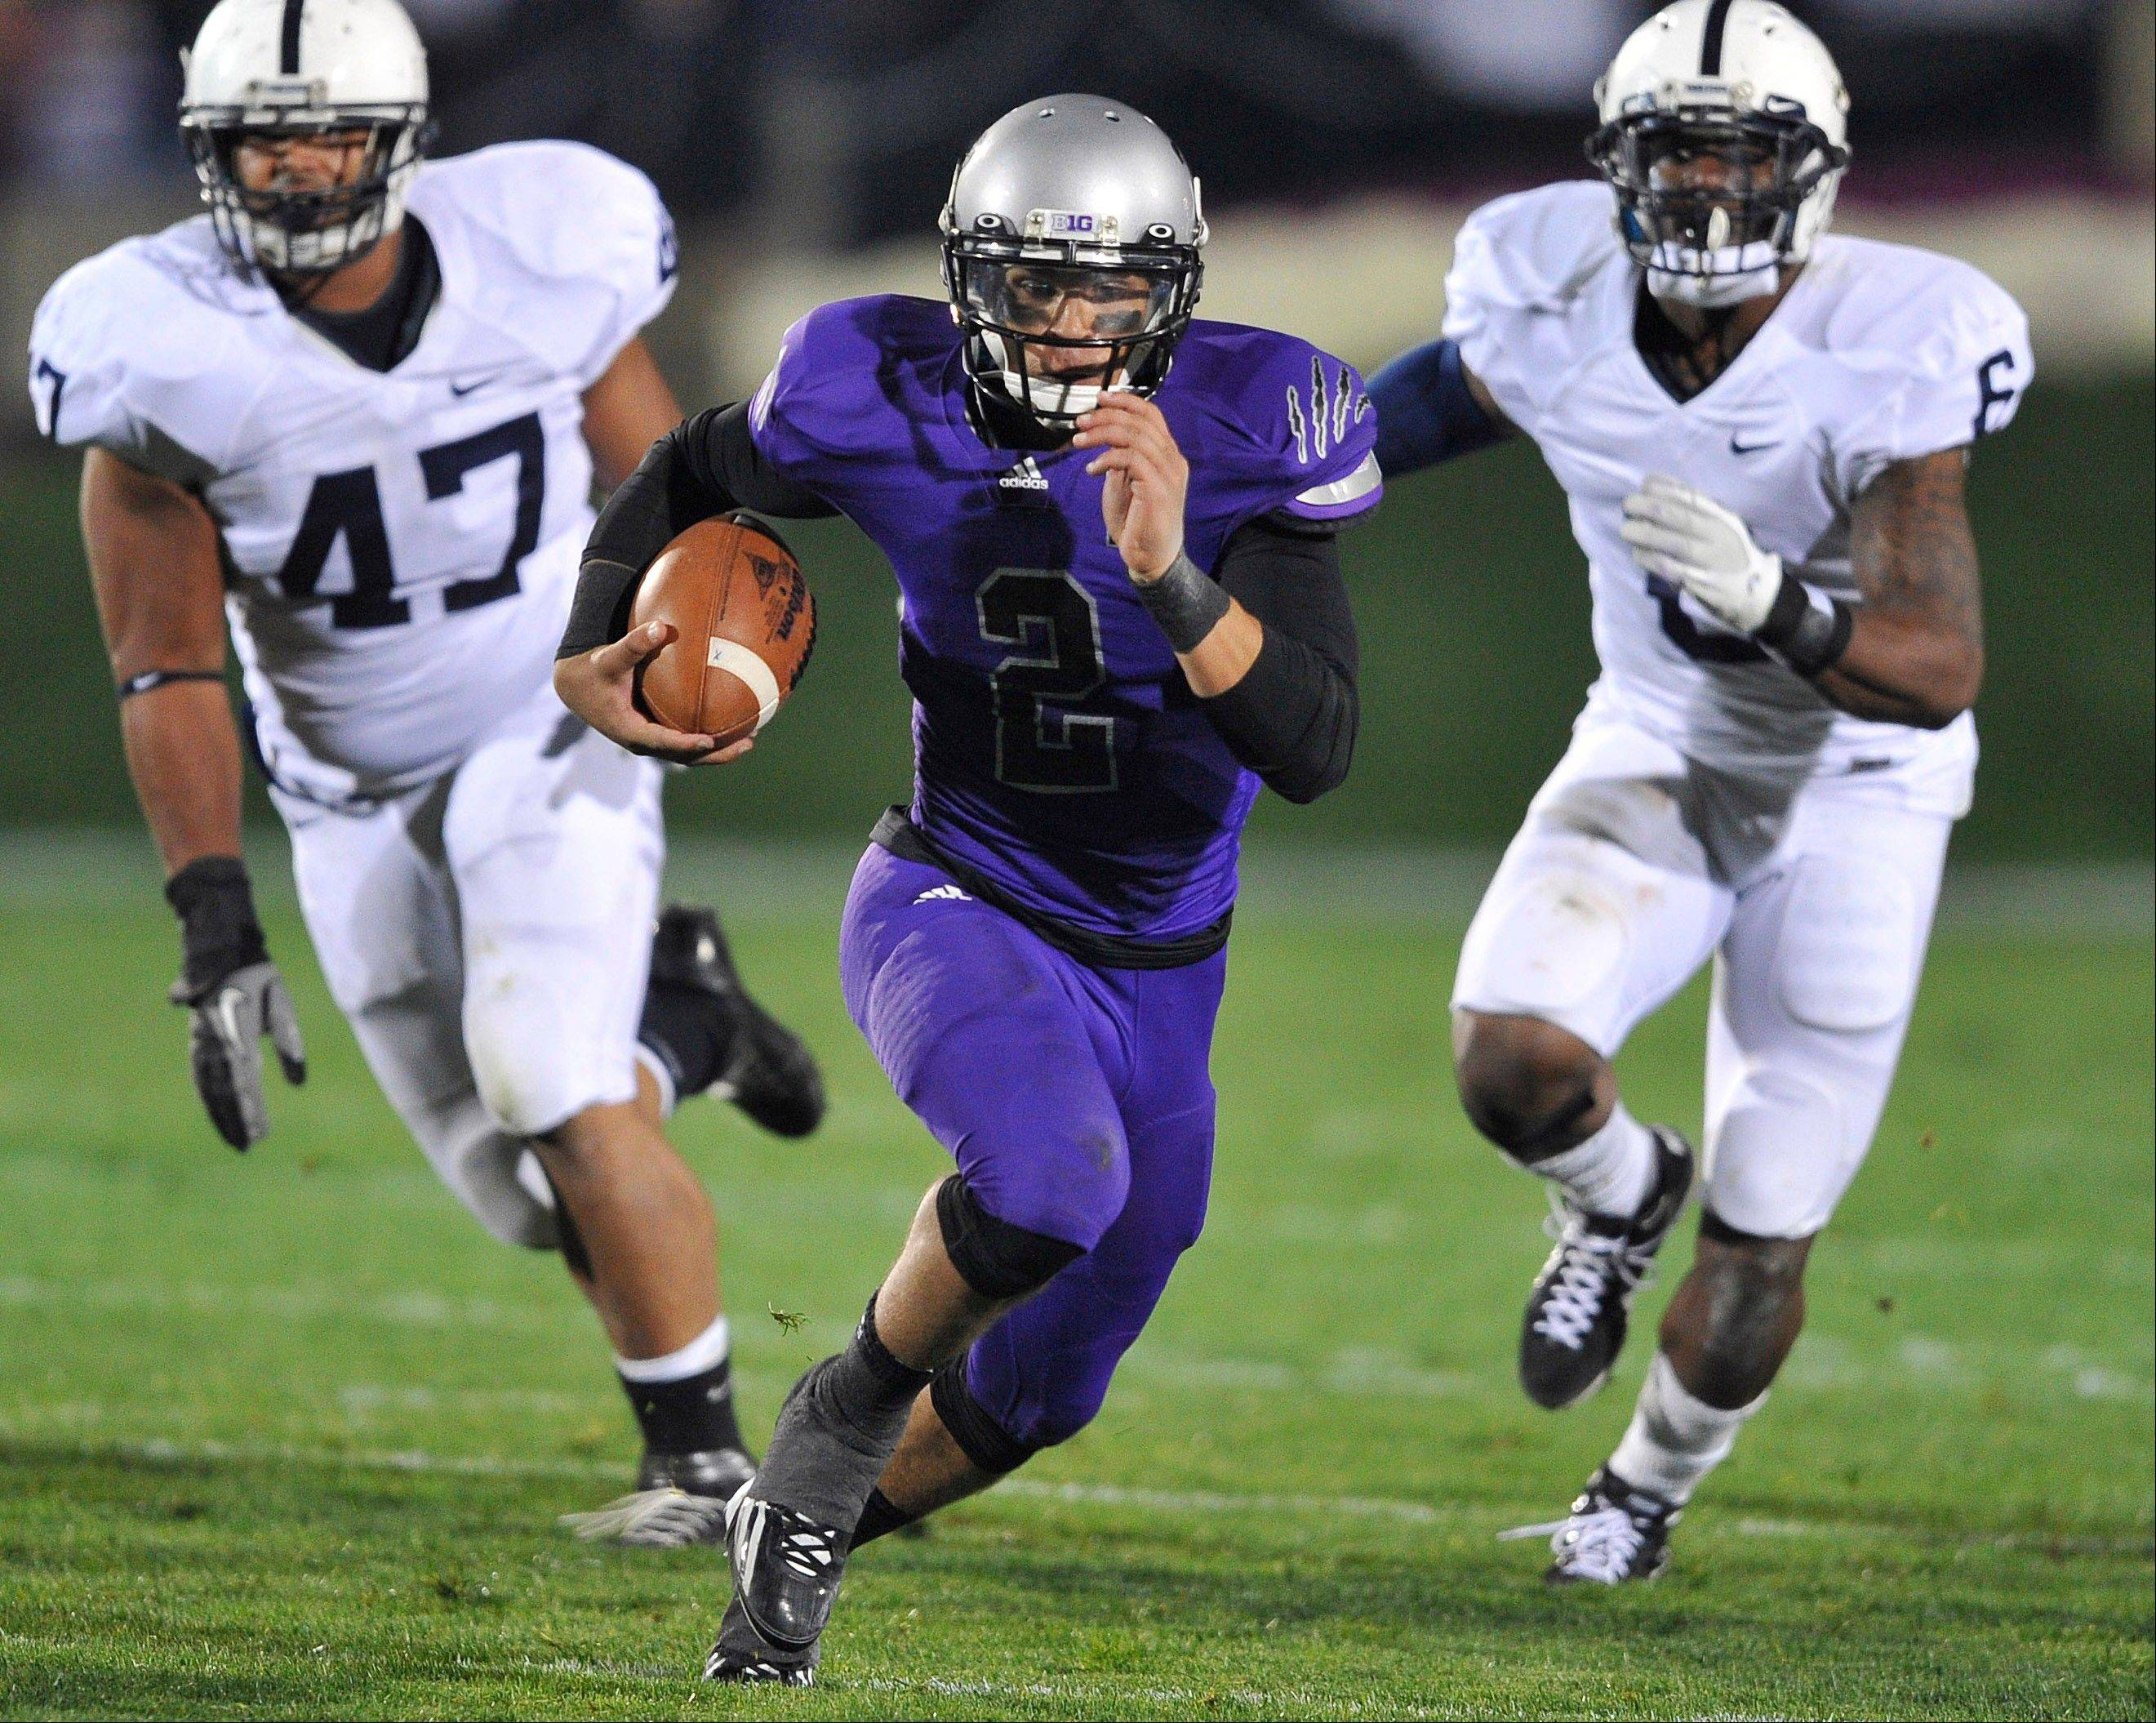 In this Oct. 22, 2011 file photo, Northwestern quarterback Kain Colter (2) rushes against Penn State in an NCAA college football game in Evanston, Ill. Colter will be the starter when Northwestern begins its season Sept. 1 against Syracuse.